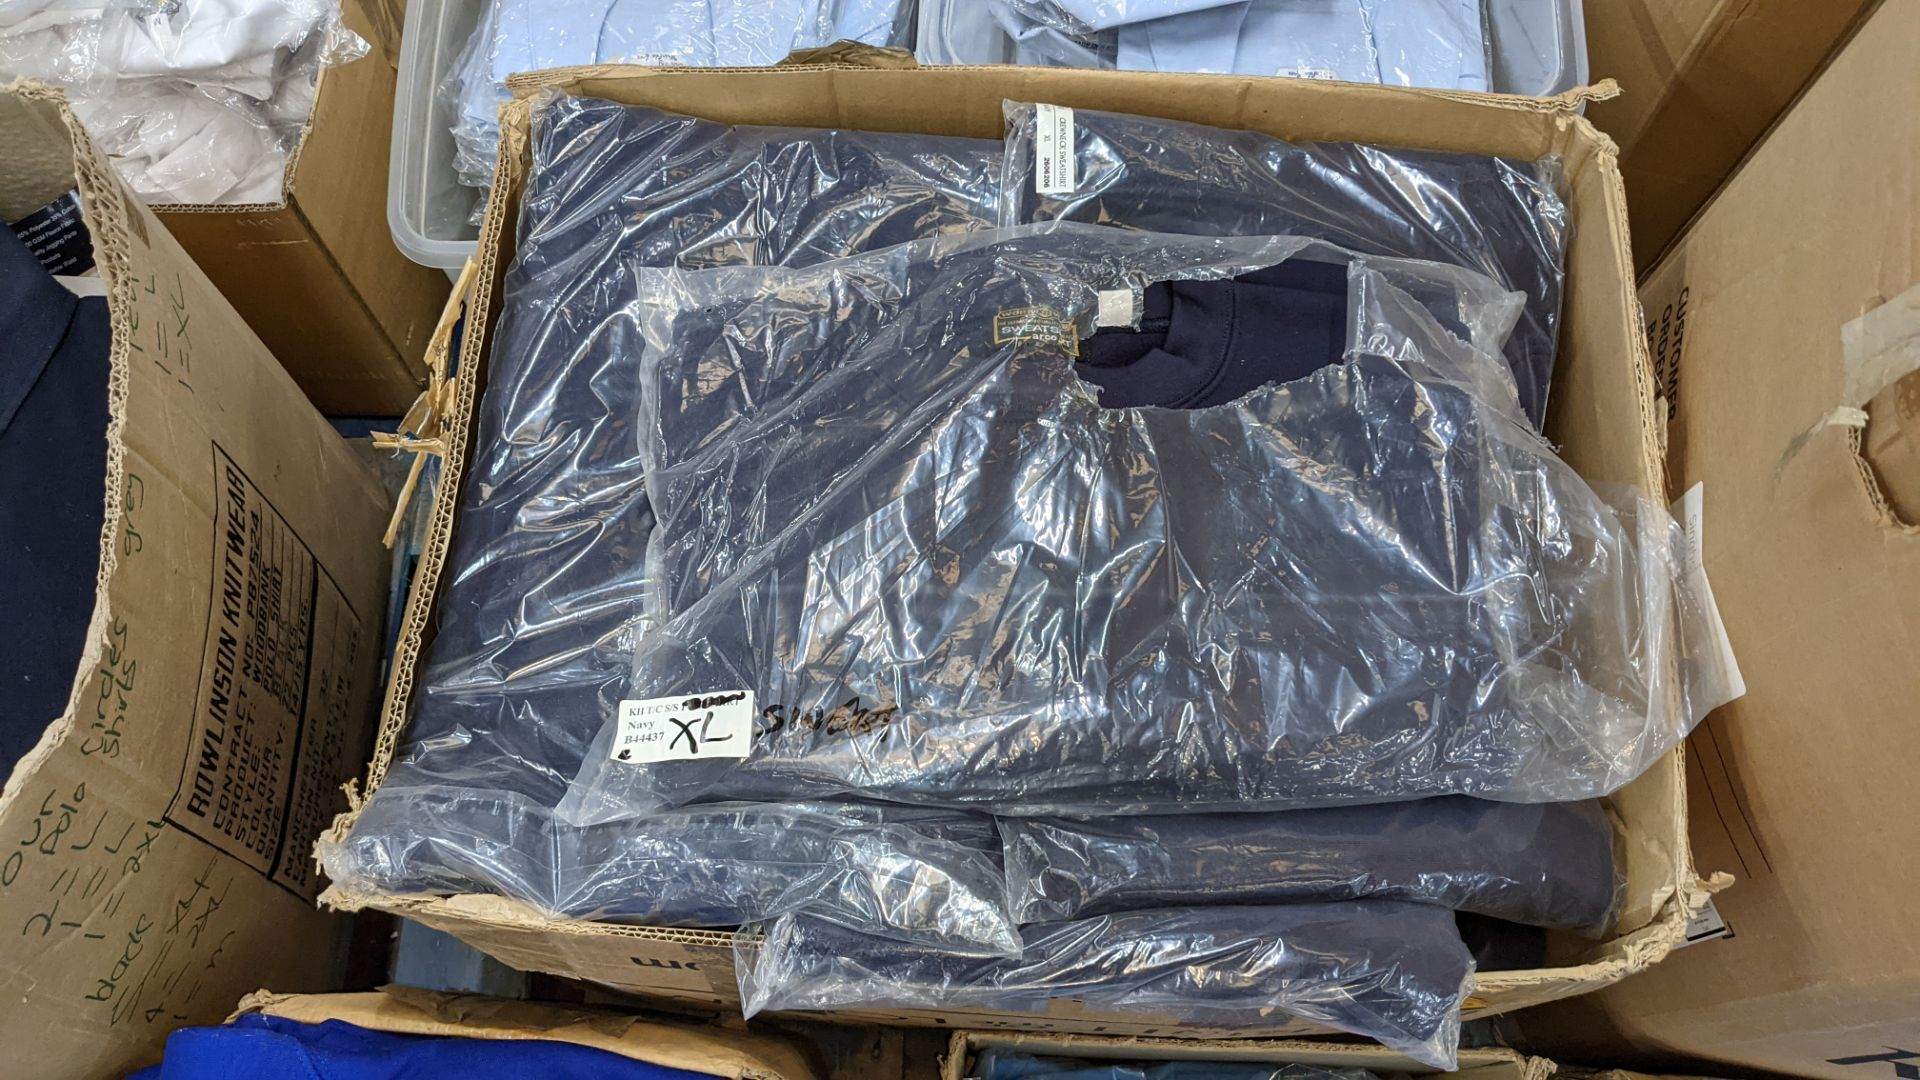 Approx 27 off blue sweatshirts - 1 large box - Image 3 of 5